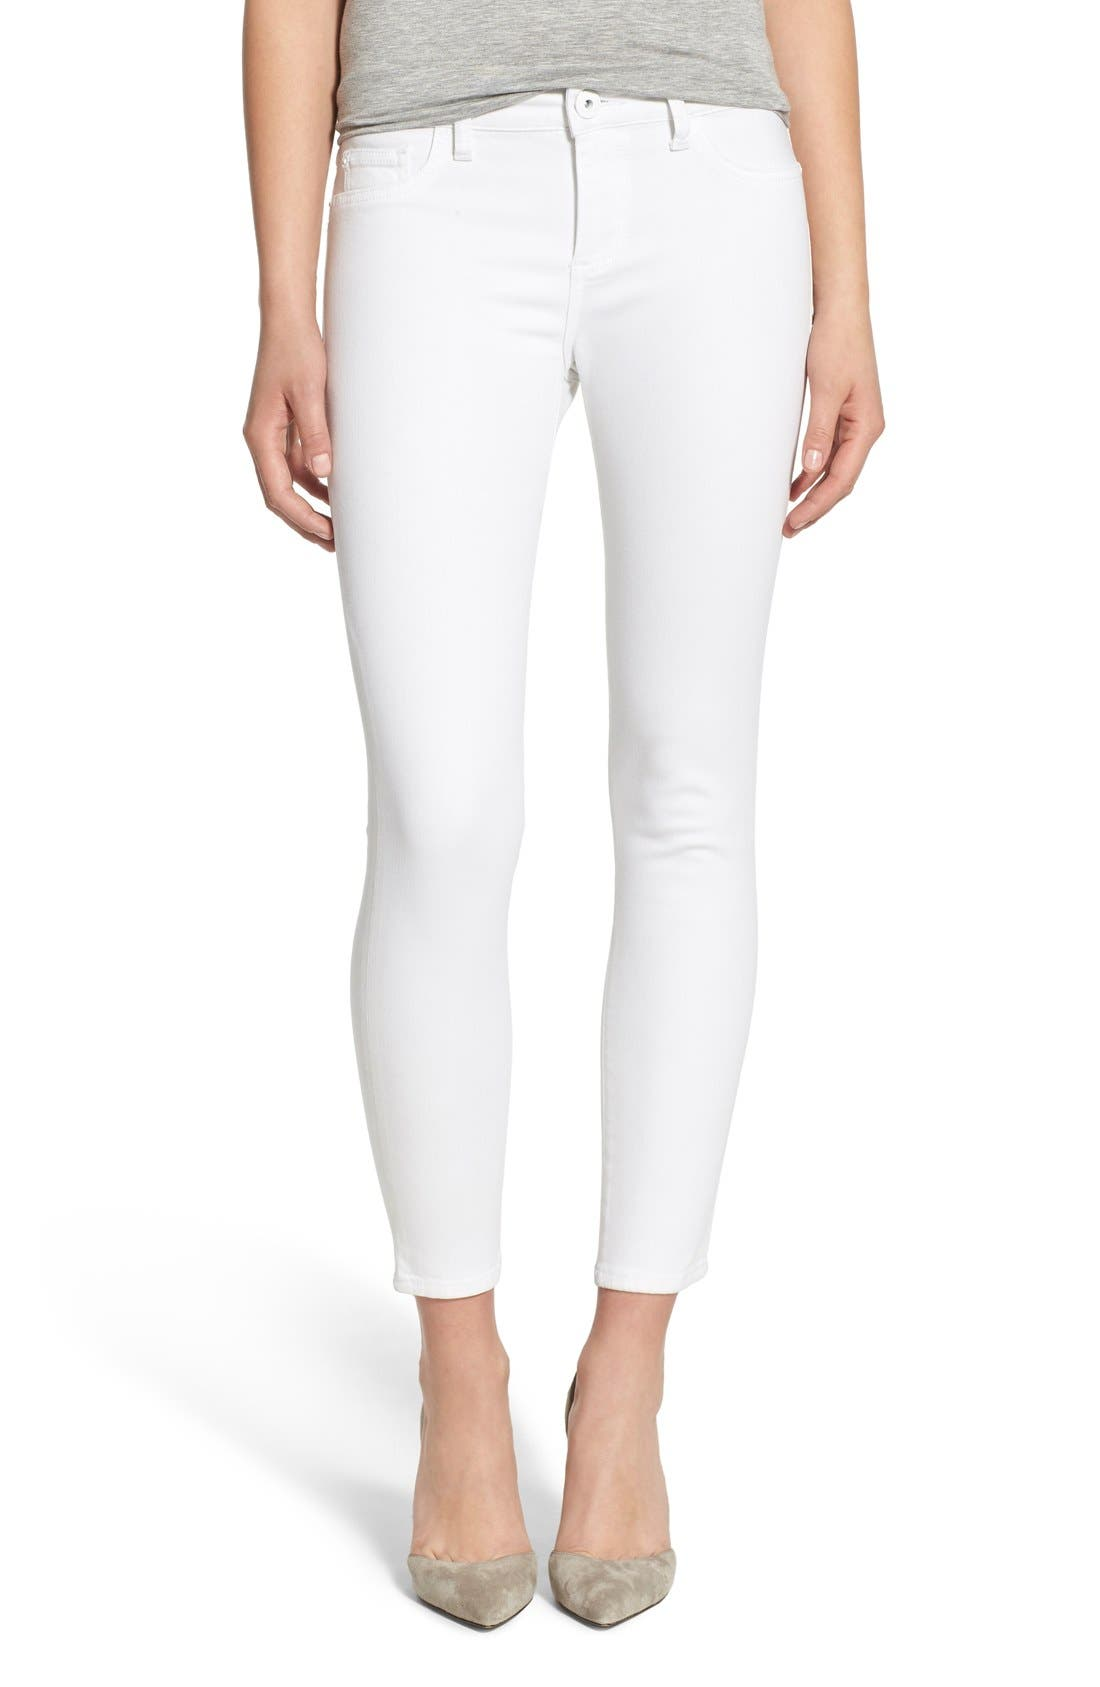 DL1961 White Jeans & Denim for Women: Skinny, Boyfriend & More ...